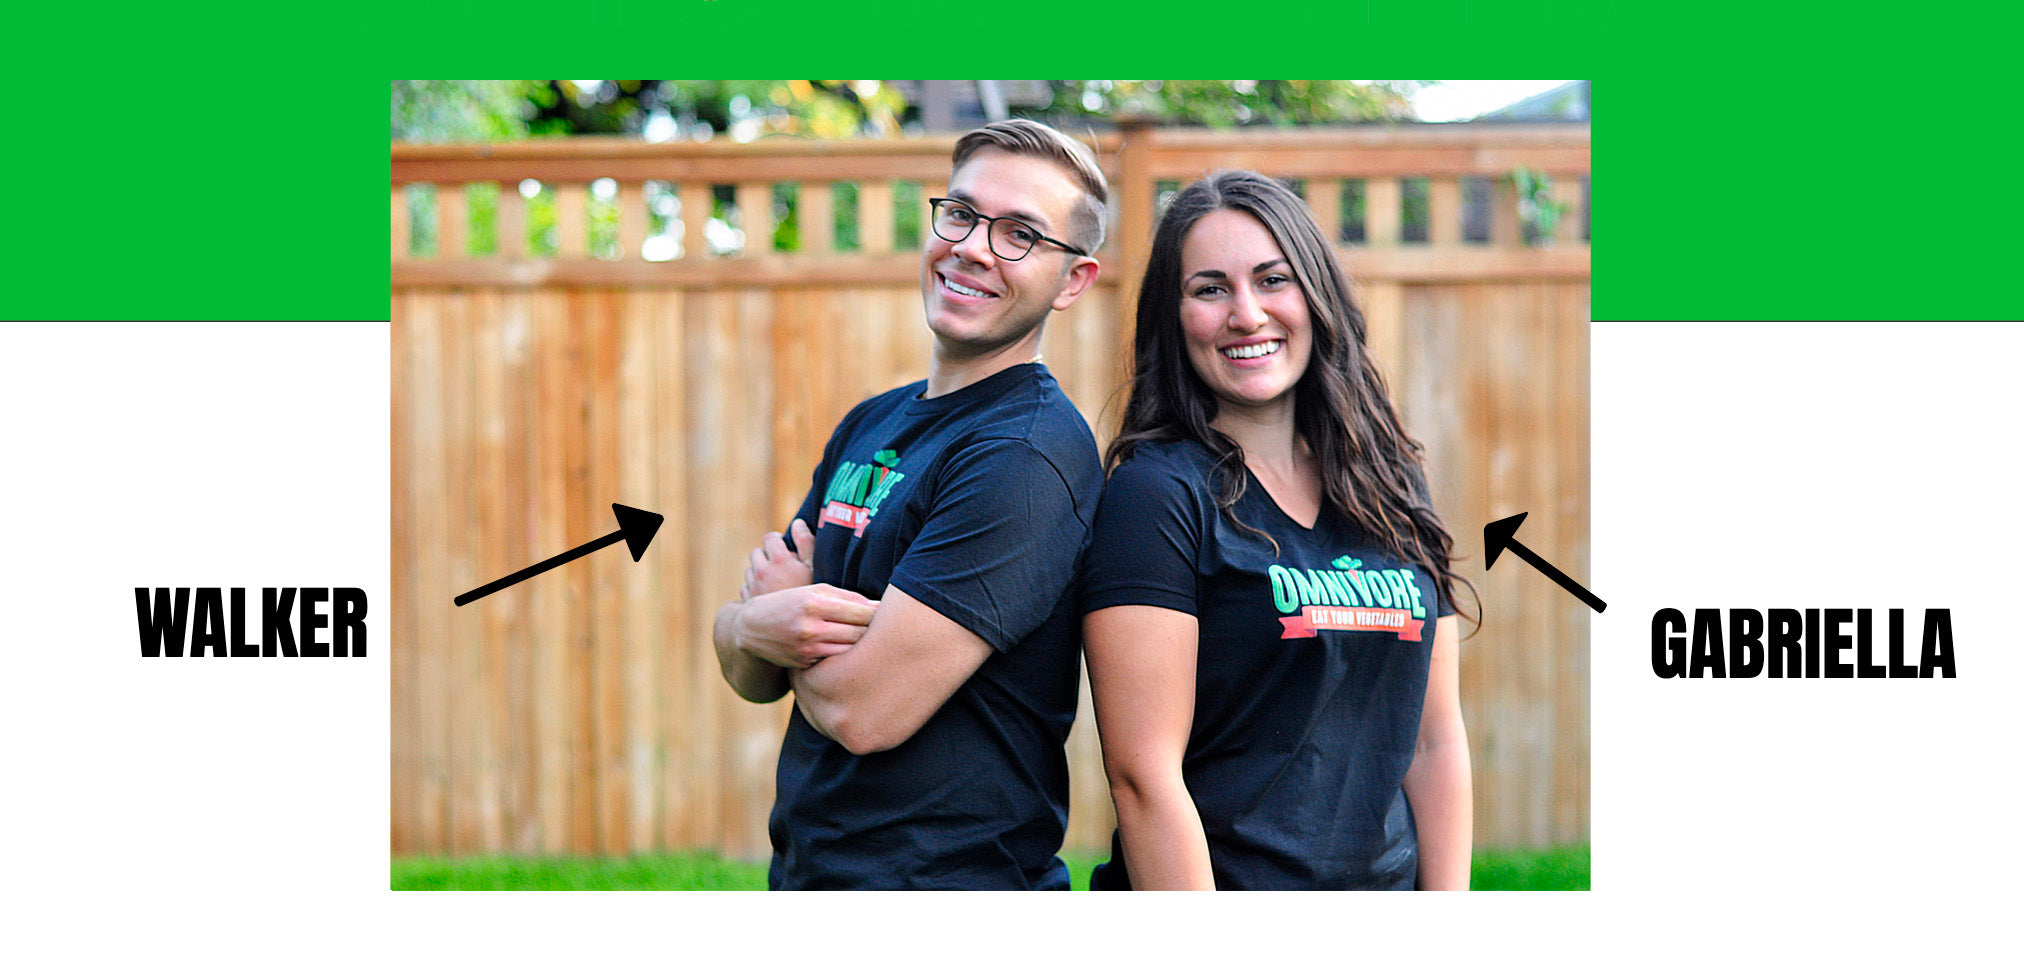 Walker Alvey and Gabriella StGeorge St.George St George founders of Omnivore Meats health and sustainability driven food company from the culinary institute of america CIA